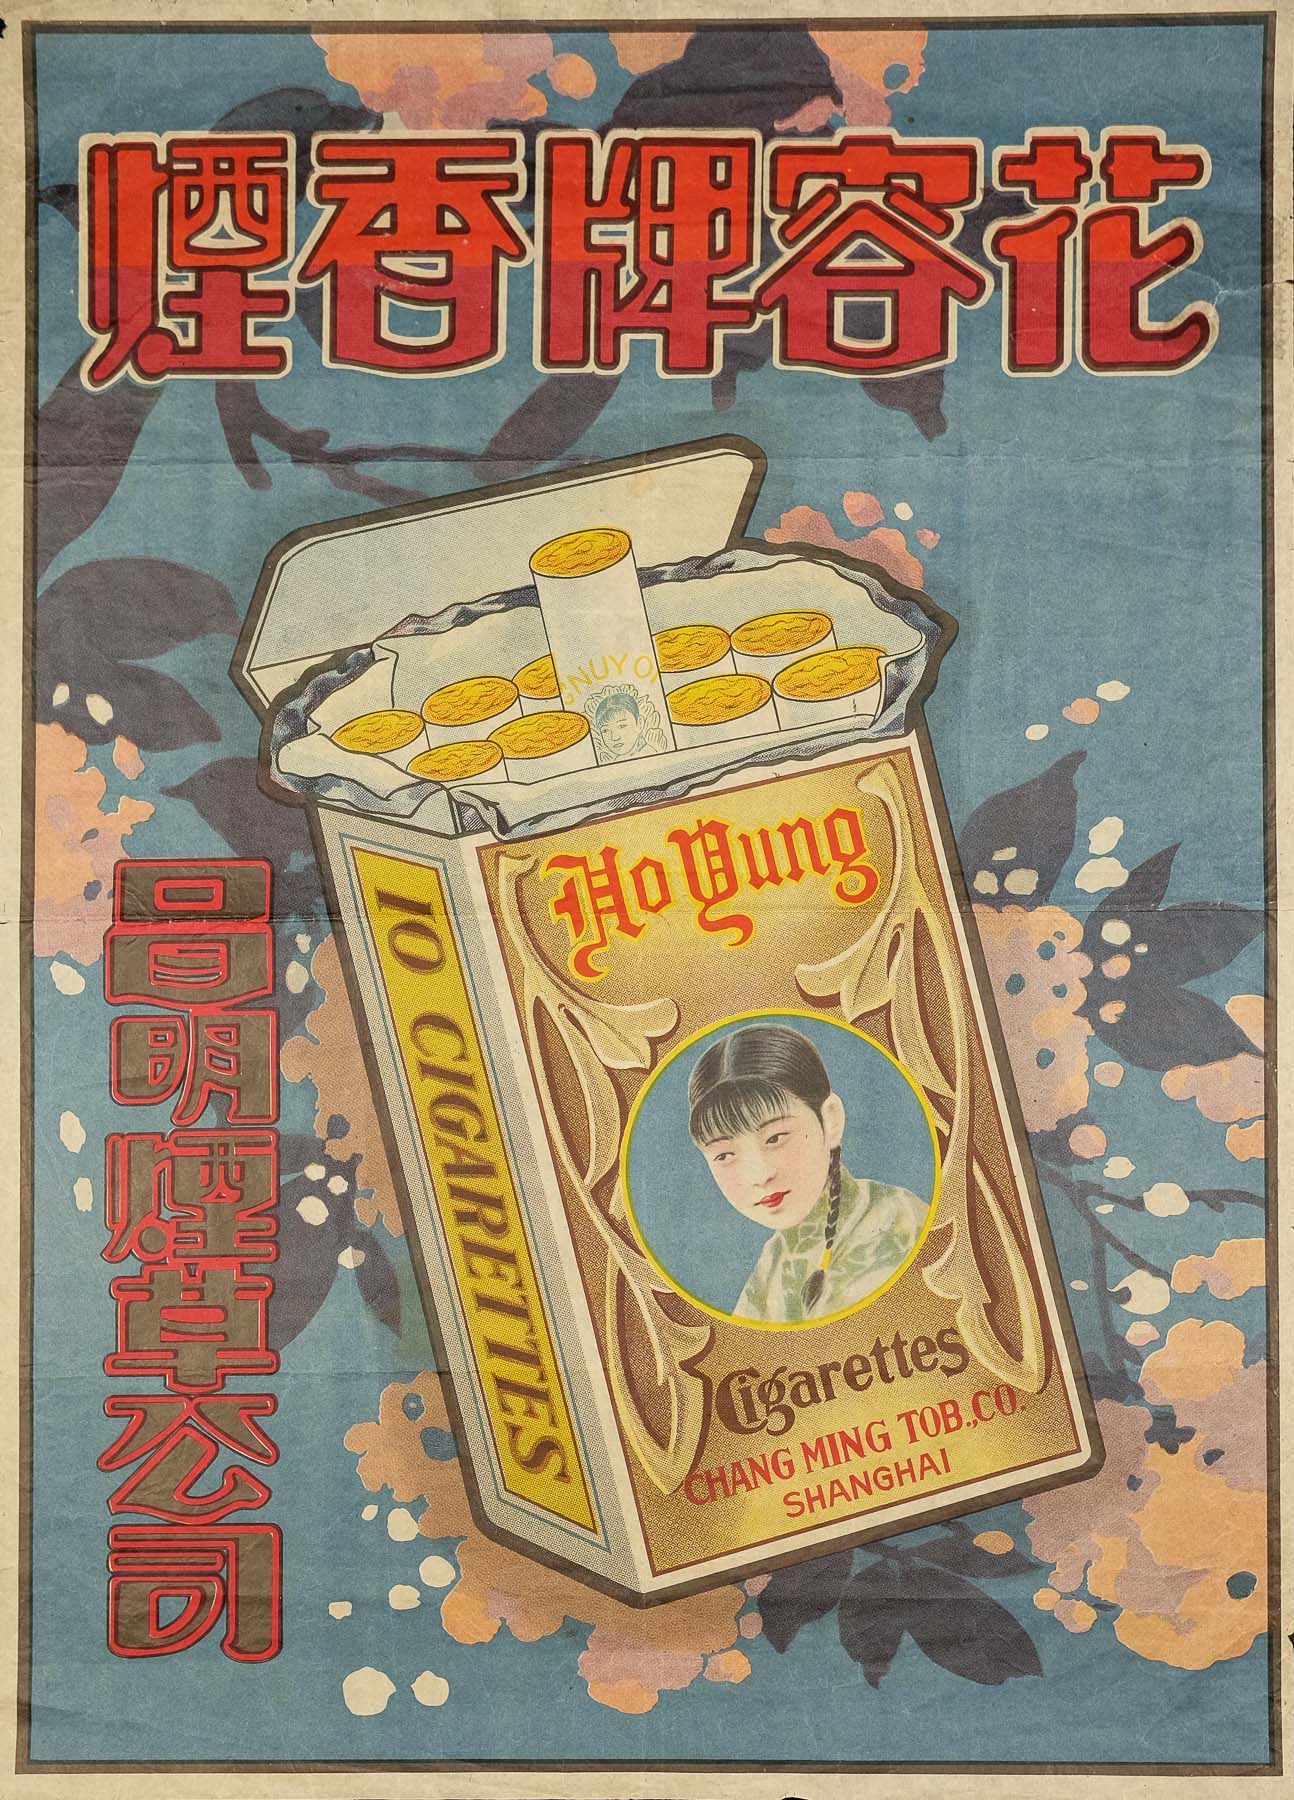 image of Huarong brand cigarettes advertising poster